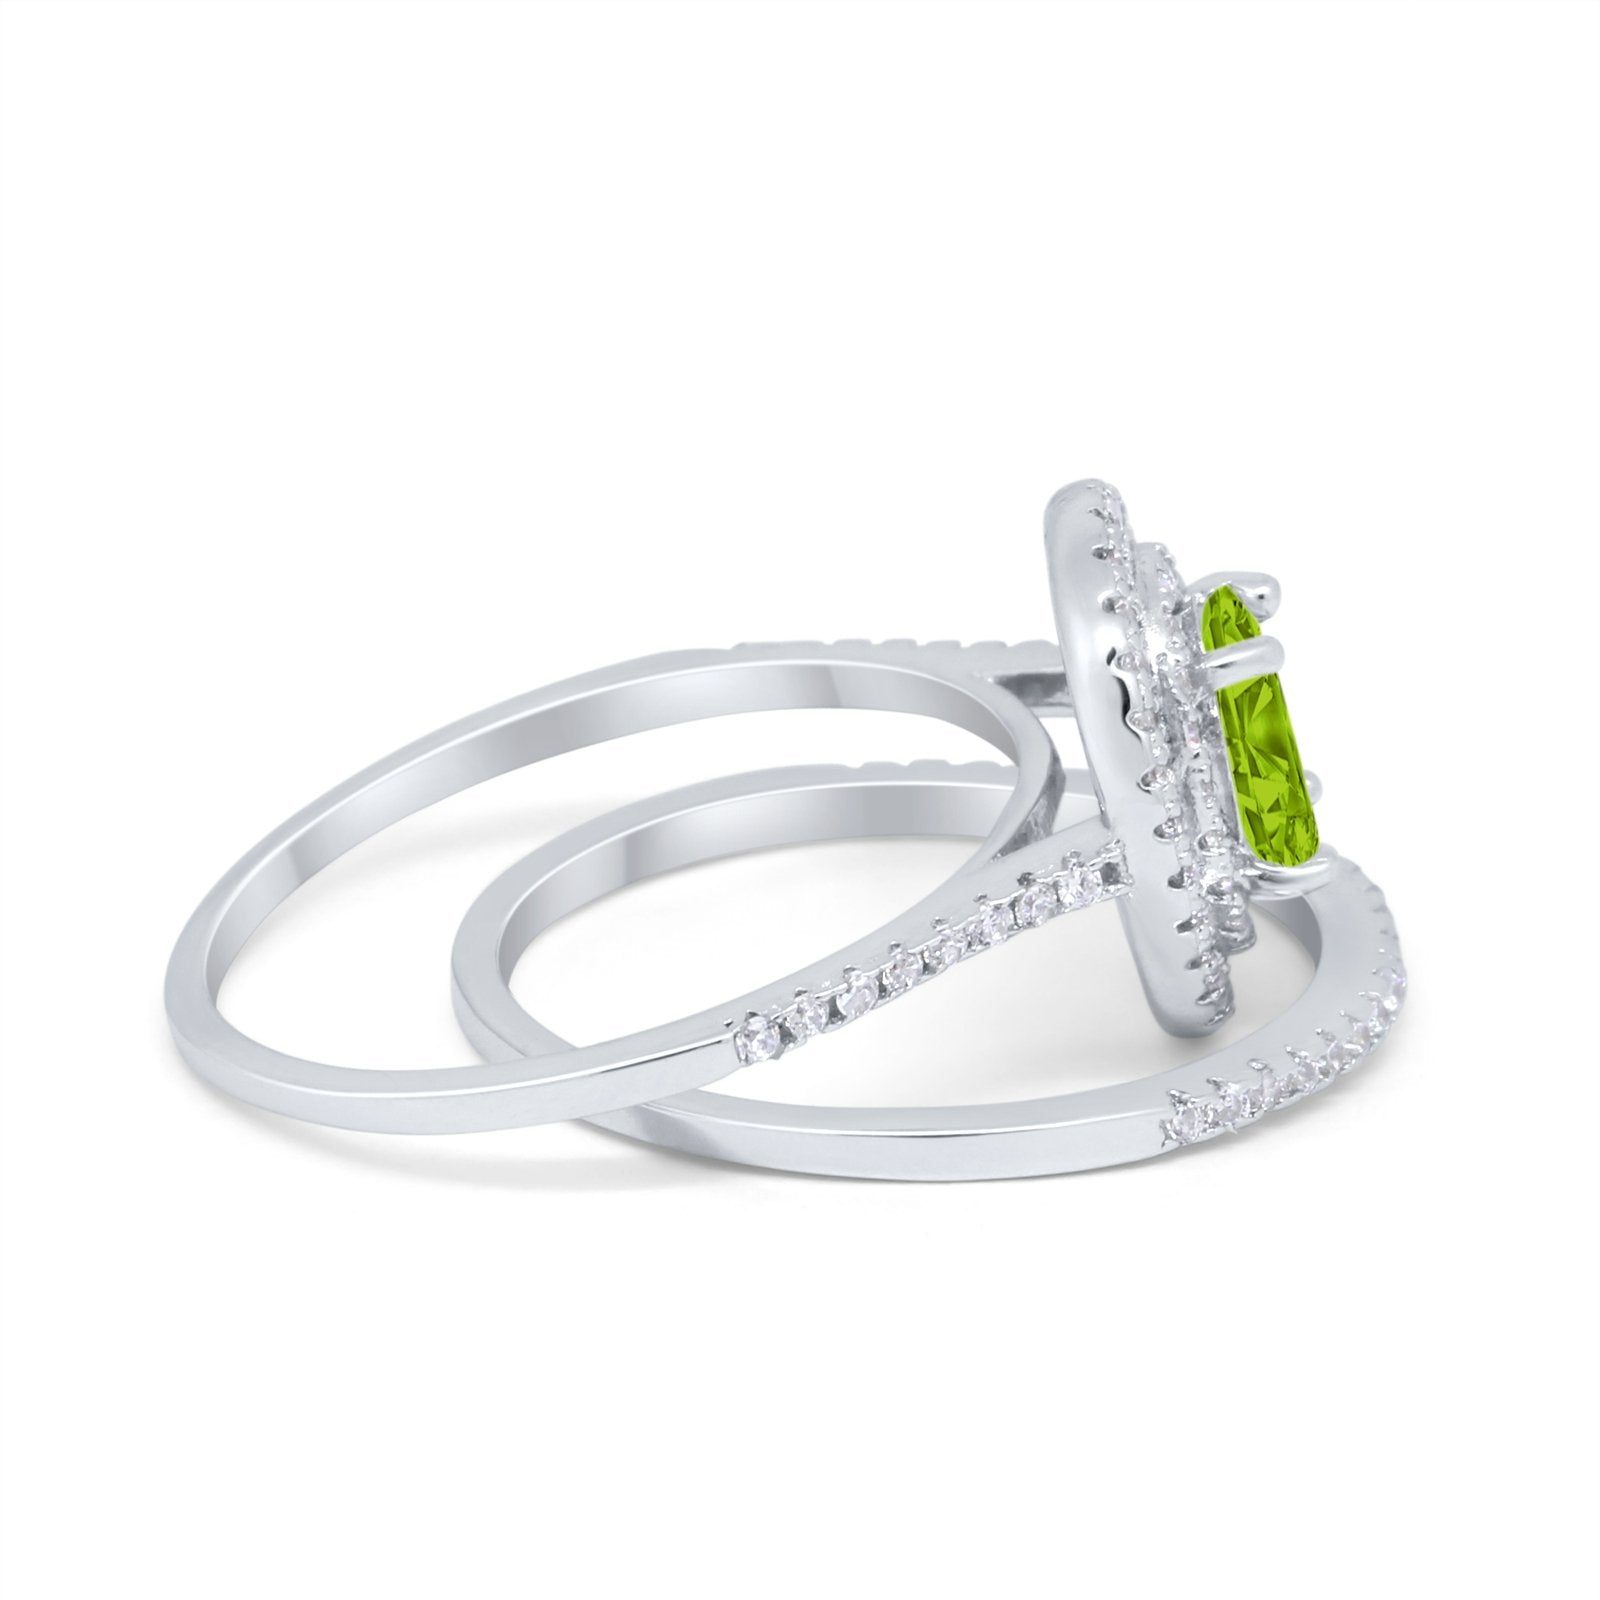 Halo Wedding Piece Bridal Ring Oval Simulated Cubic Zirconia Sterling Silver